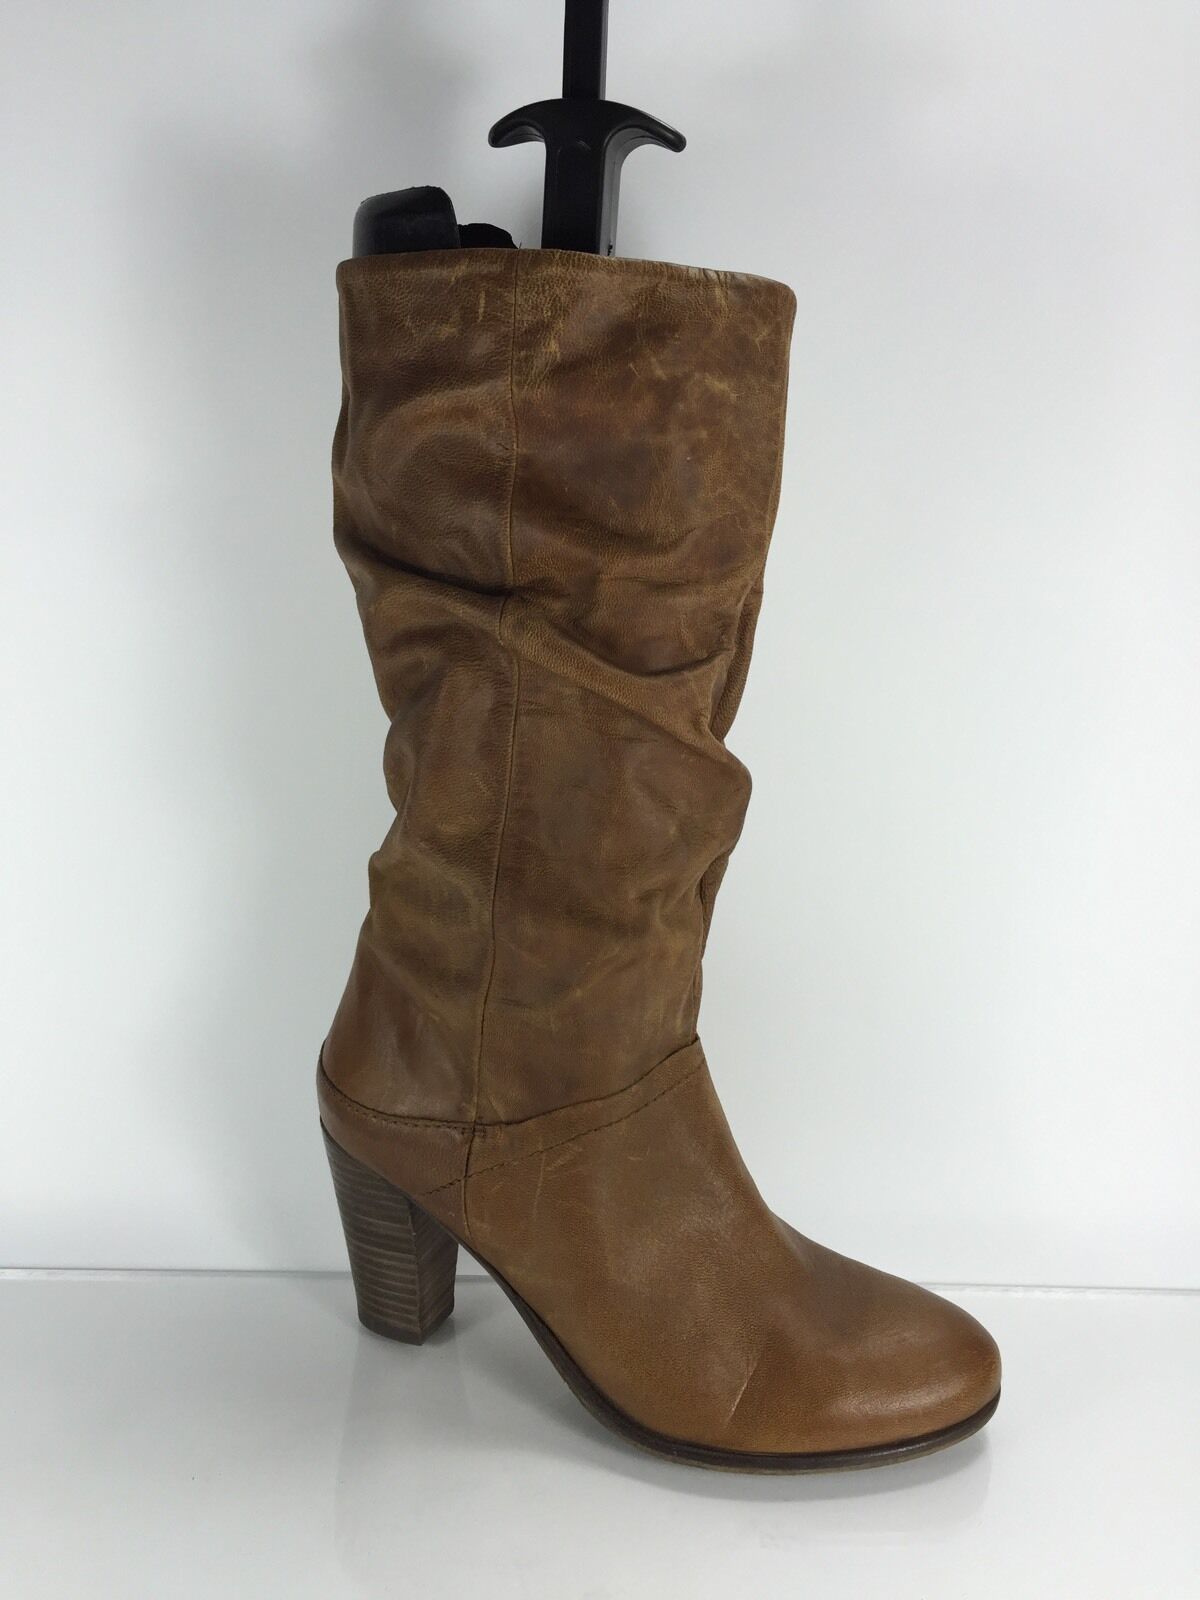 Steve Madden Womens Brown Leather Knee Boots 9.5